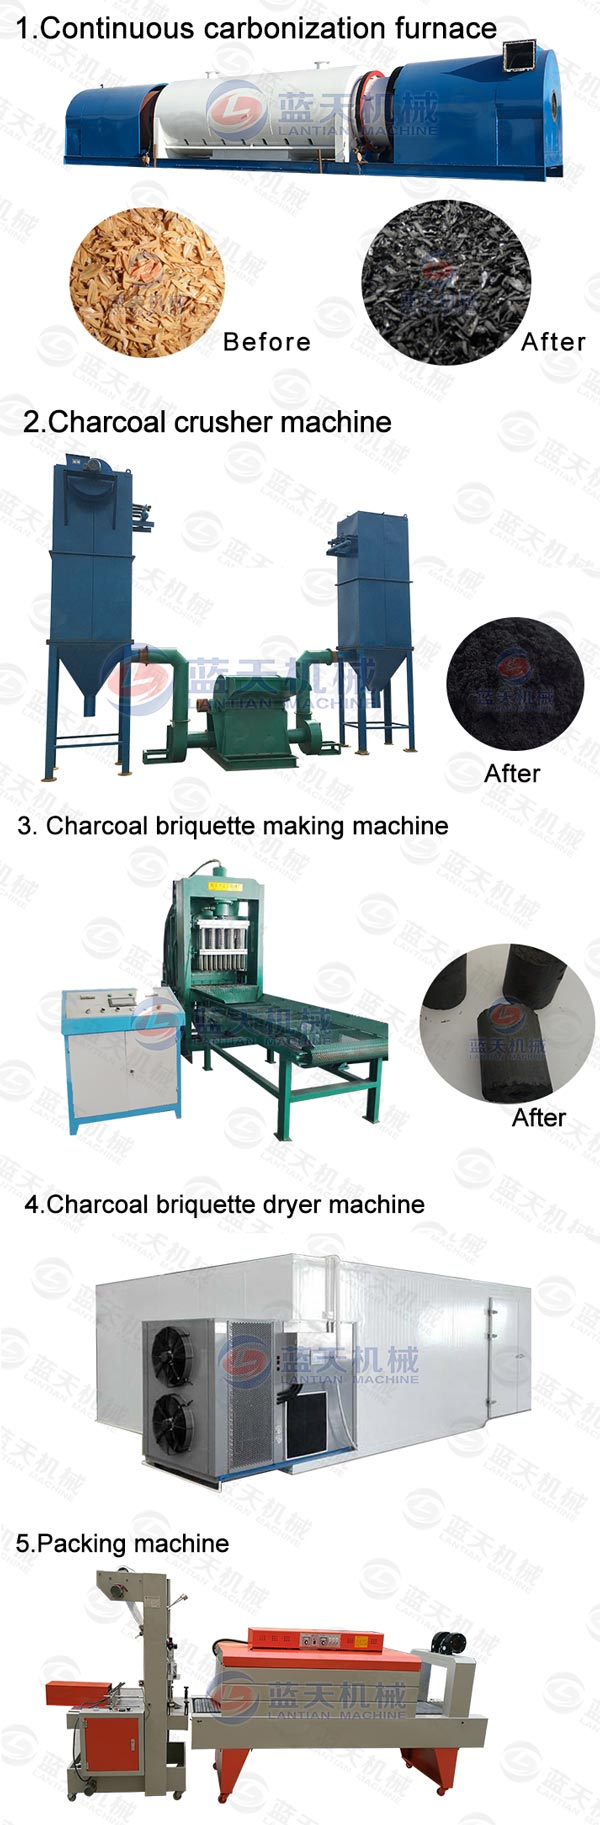 Product line of charcoal briquette making machine